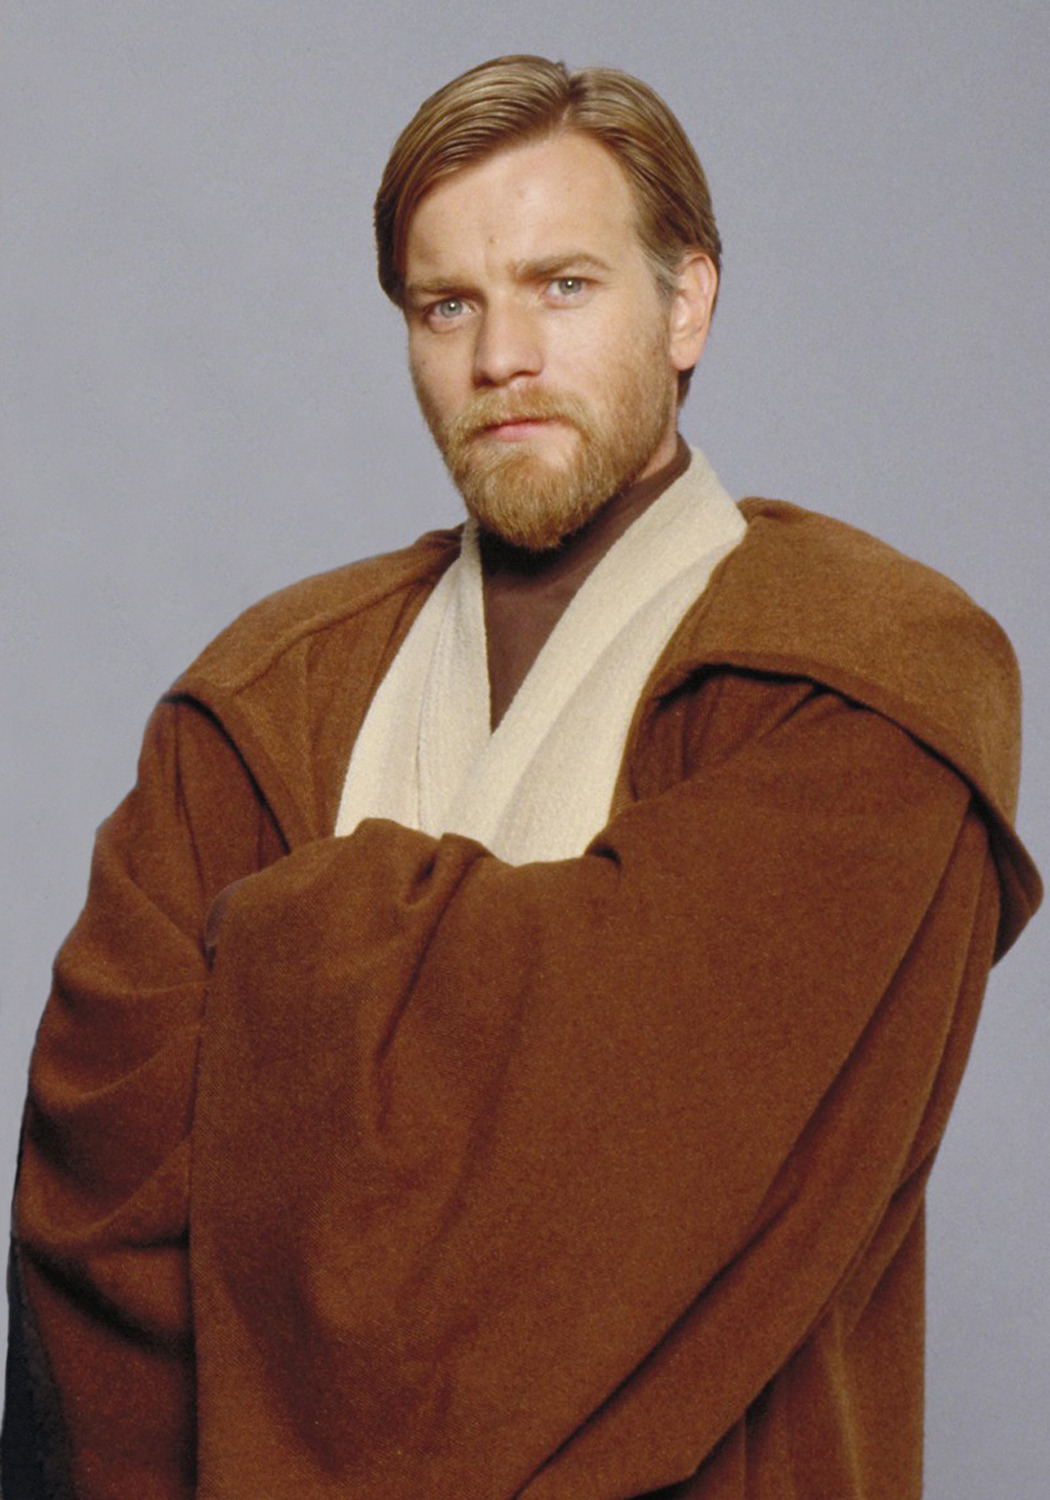 Obi wan kenobi wife sexual dysfunction